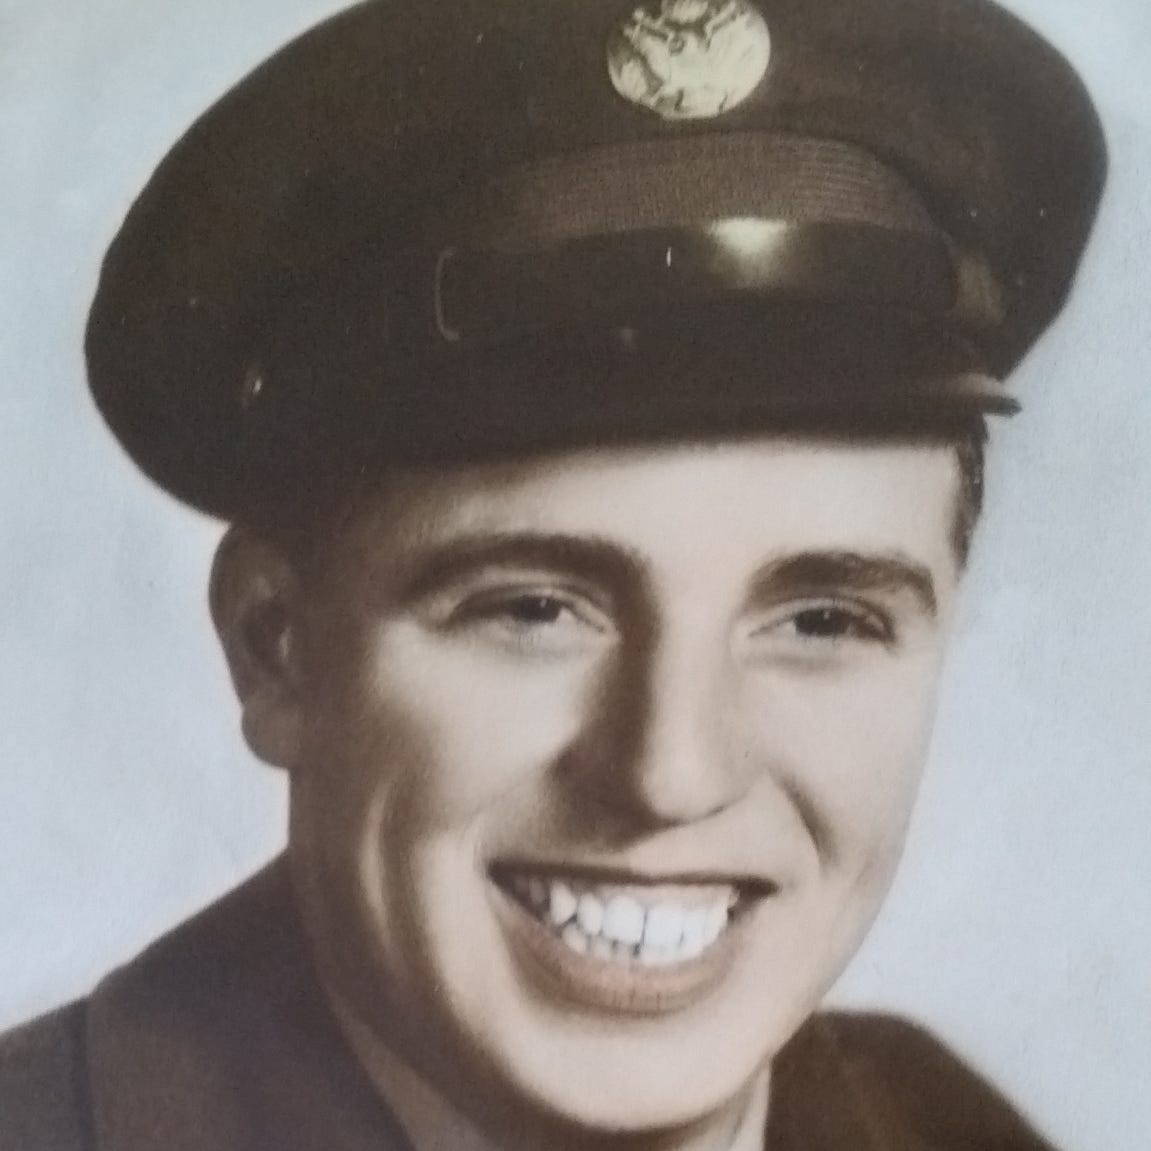 Veteran's story: He helped build an air base in Korea